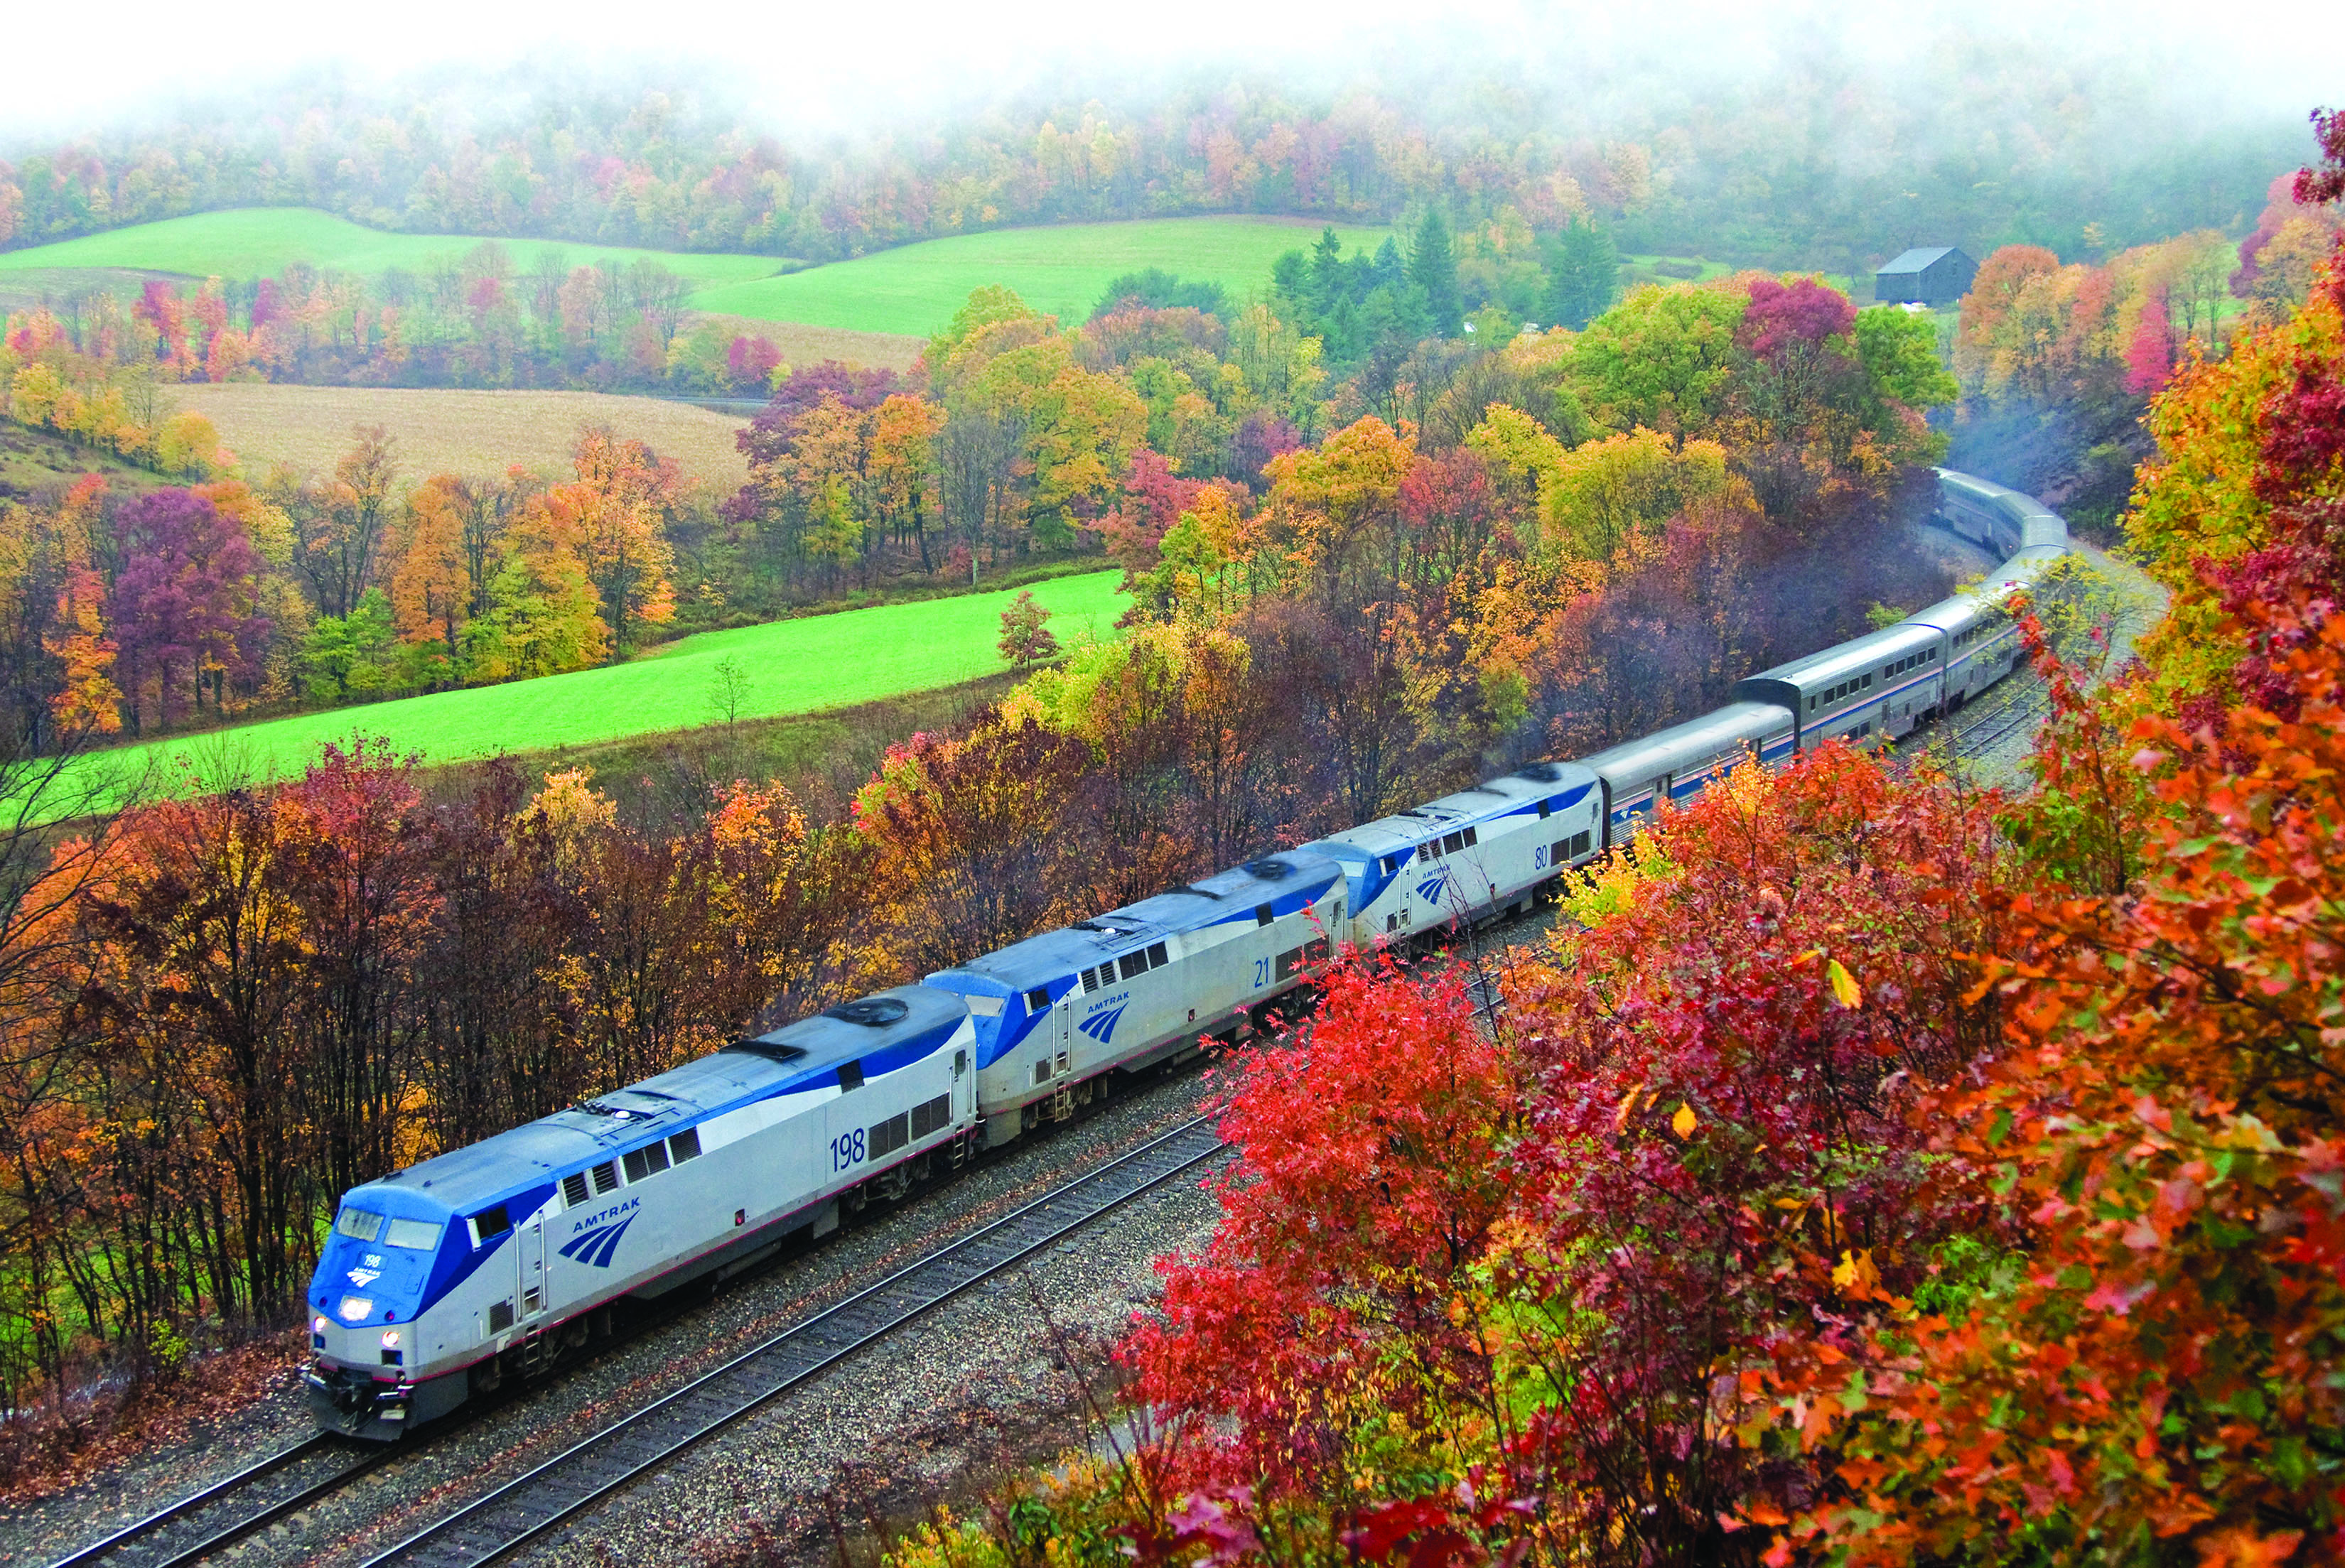 Amtrak train traveling through the Allegheny Mountains